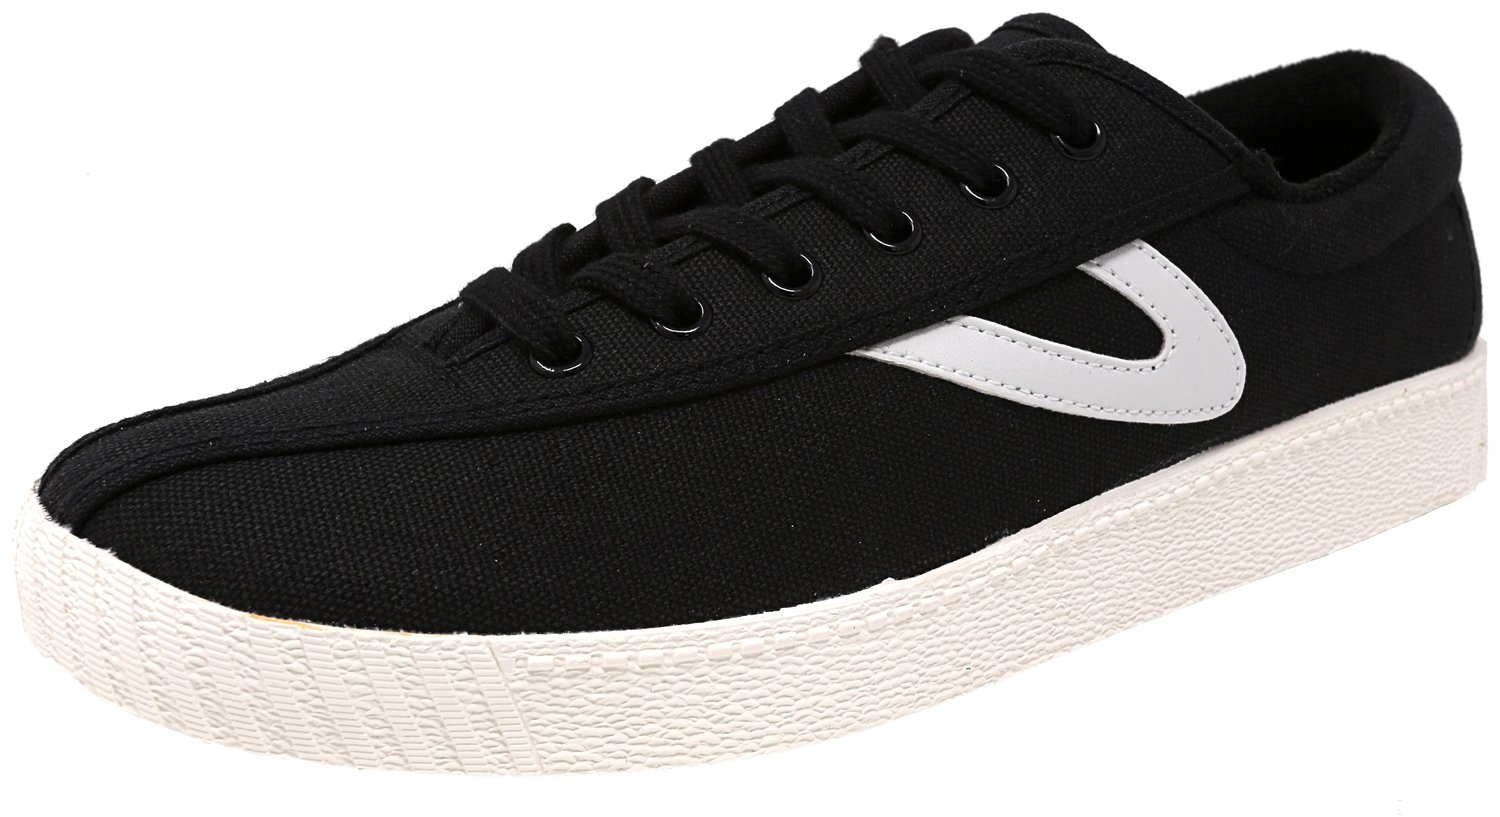 Tretorn Women's Nylite Plus Fashion Sneaker B01G61NMJC 7 B(M) US|Black/Black/White